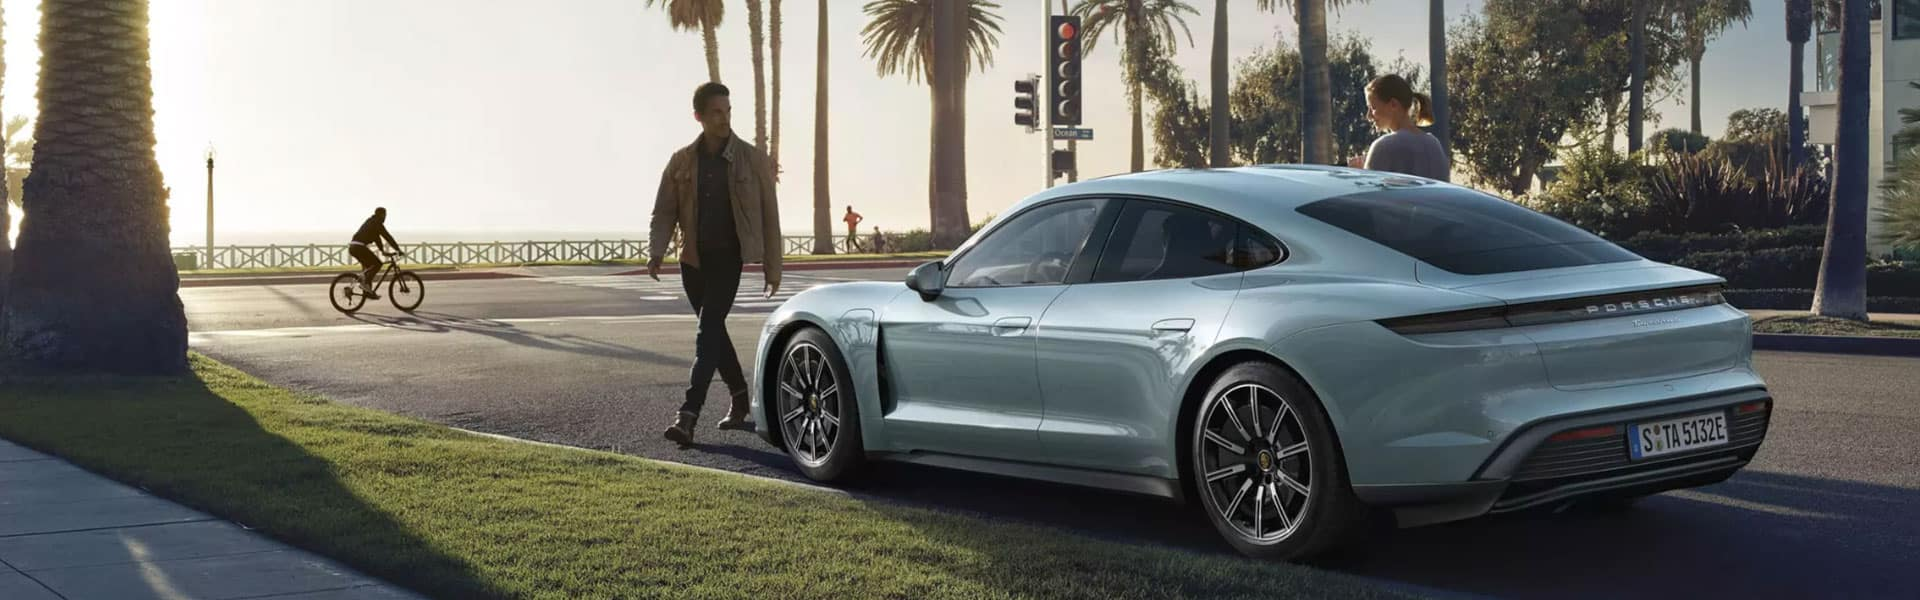 2020 Porsche Taycan vs 2020 Porsche 911 Comparison